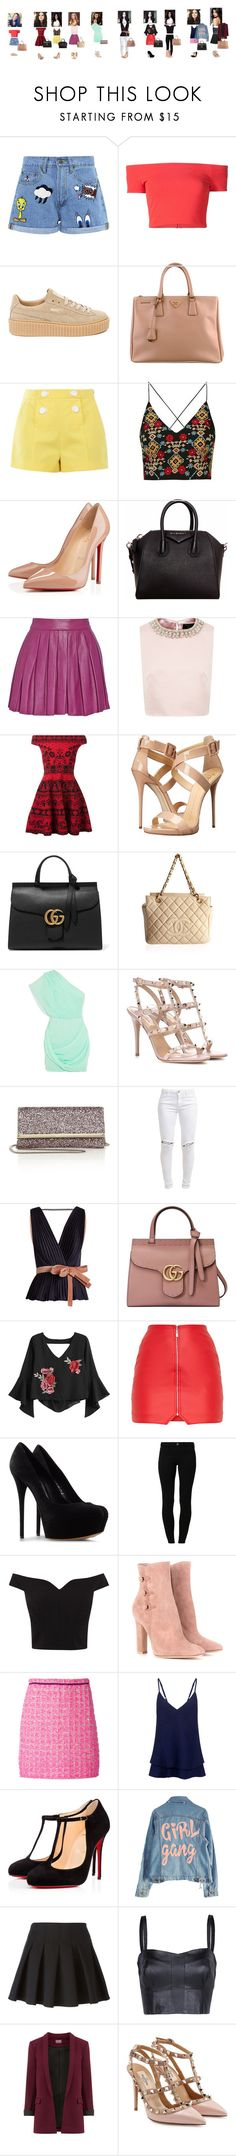 """""""Gabriela Forks- 1 a 8"""" by duda-909 ❤ liked on Polyvore featuring Maybelline, Paul & Joe Sister, Alice + Olivia, Puma, Prada, Boutique Moschino, Topshop, Christian Louboutin, Givenchy and Ted Baker"""